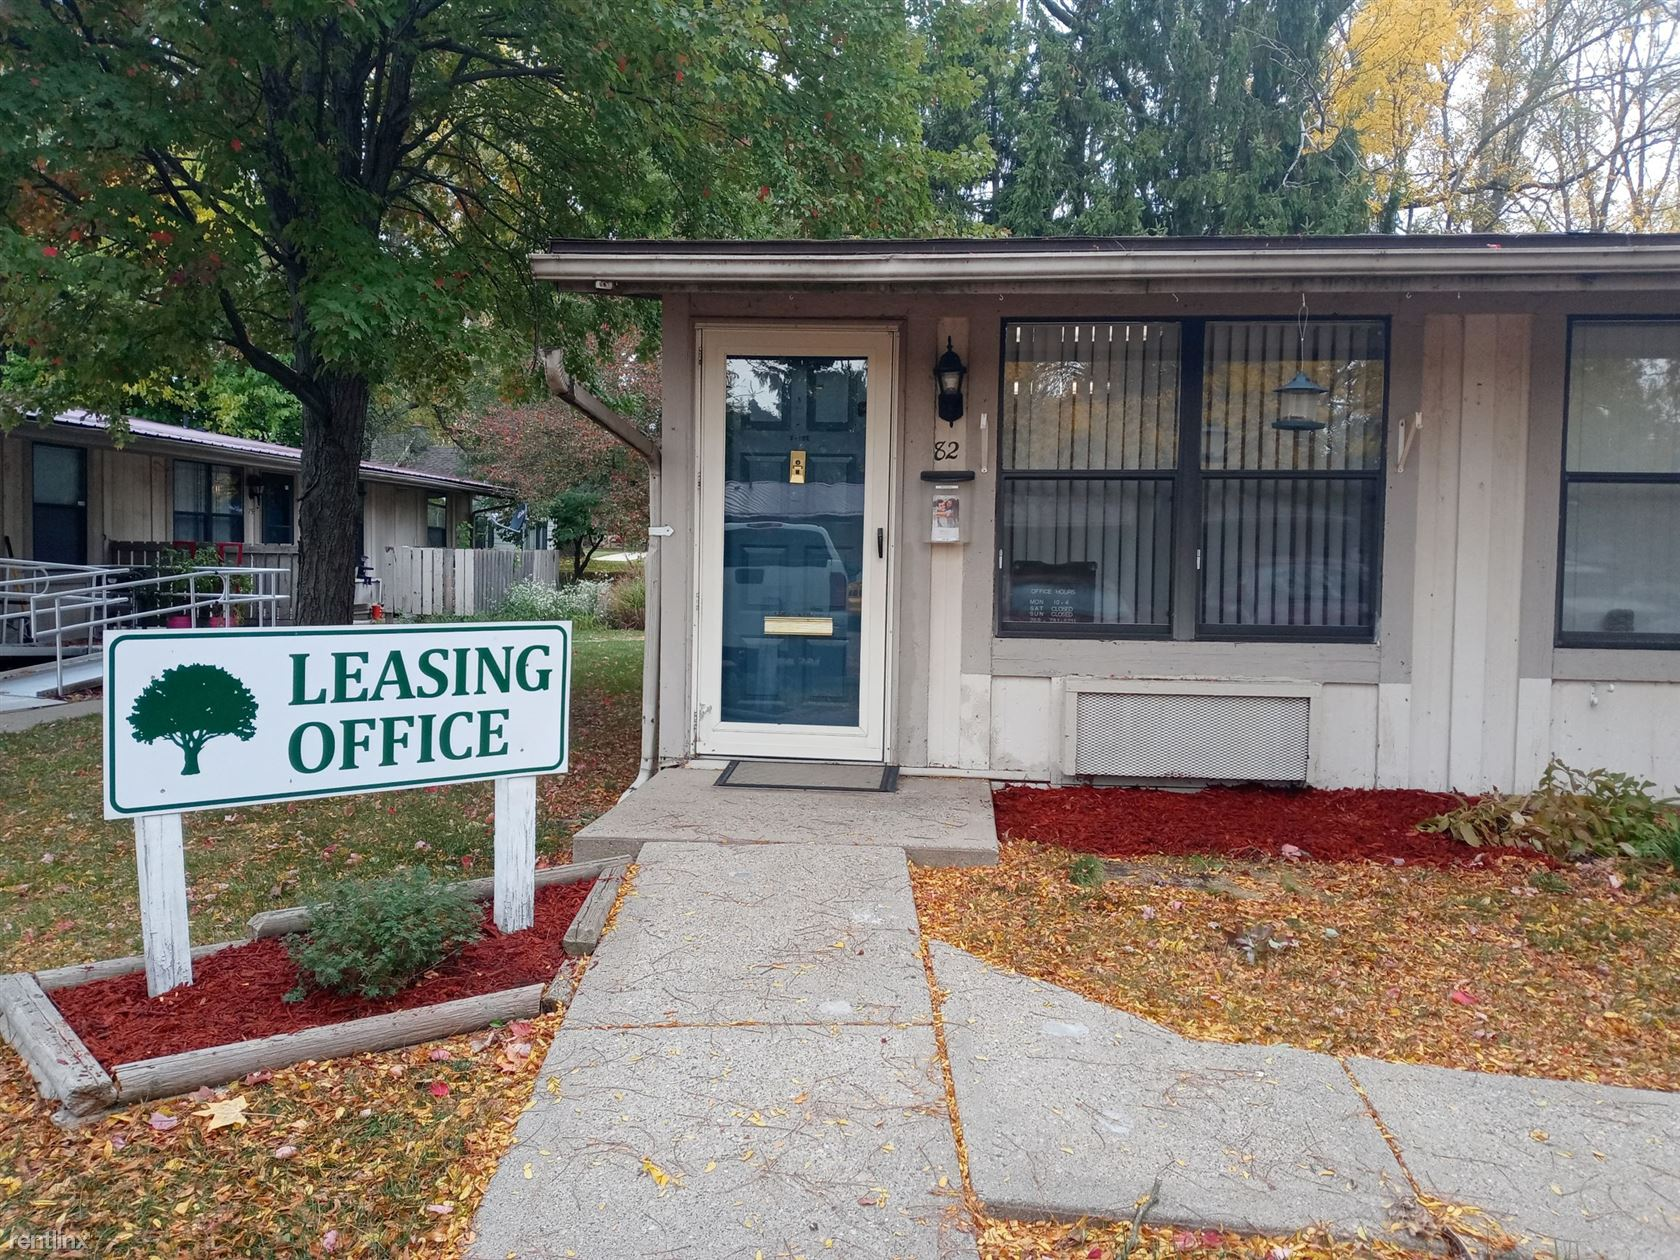 Apartment for Rent in Marshall